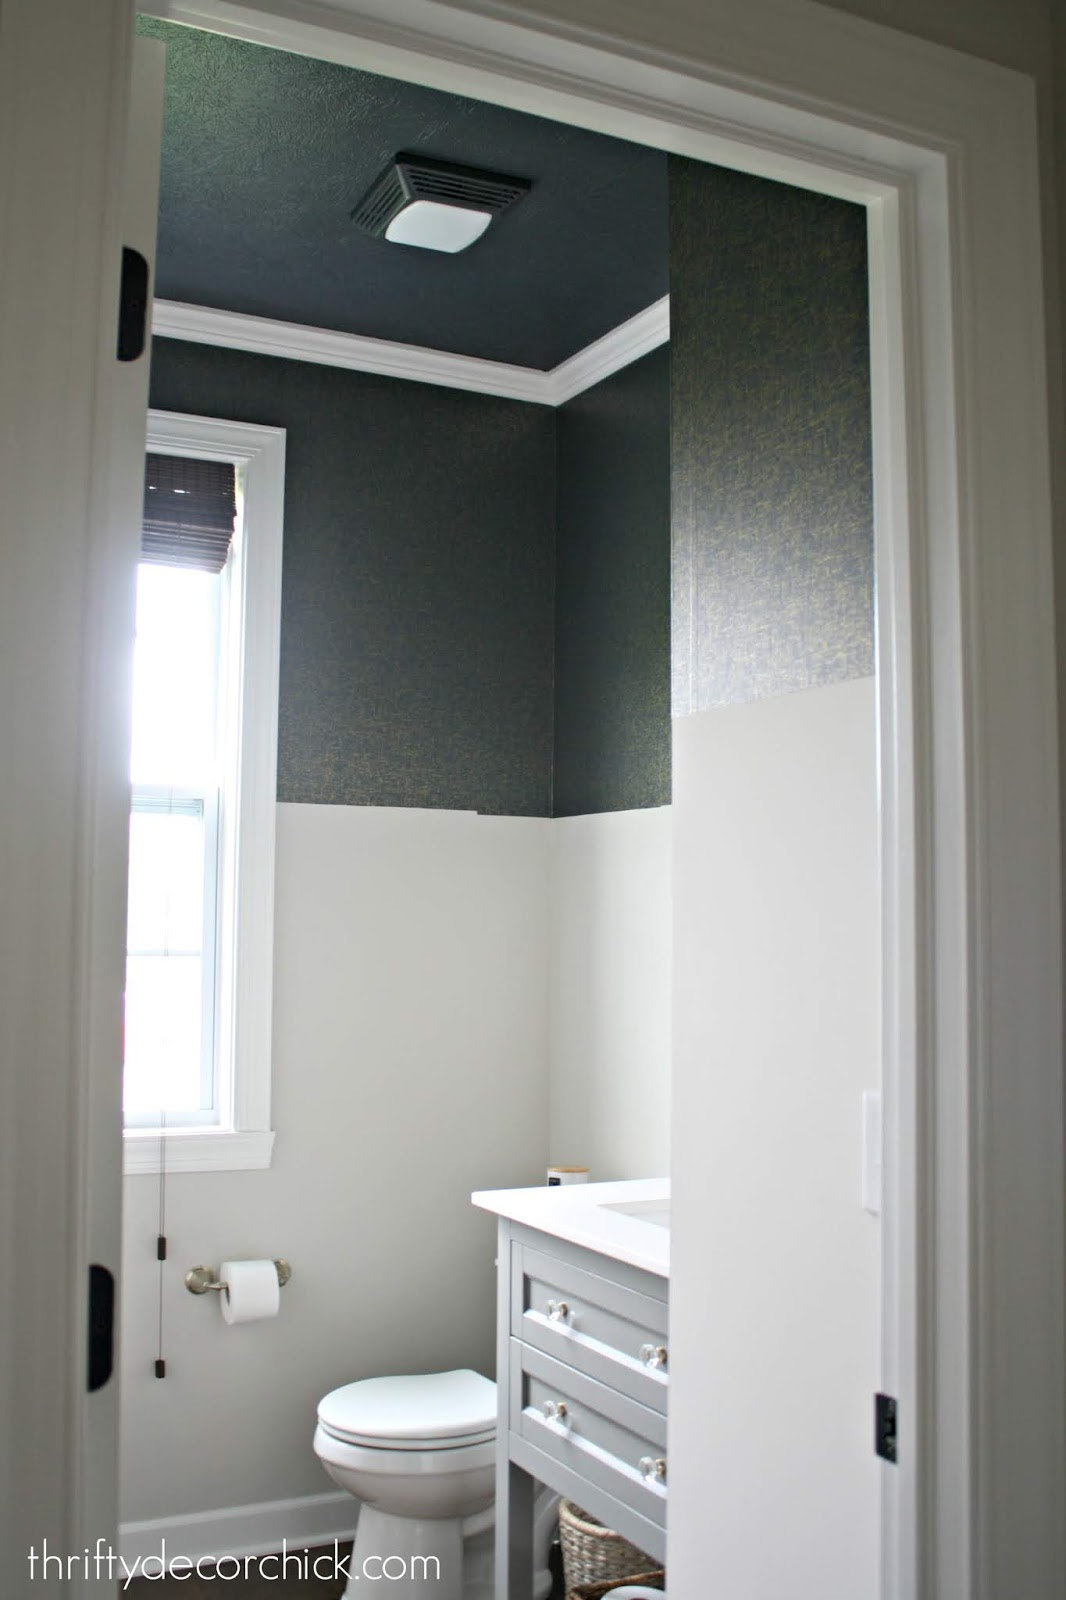 Dark painted ceiling in bathroom